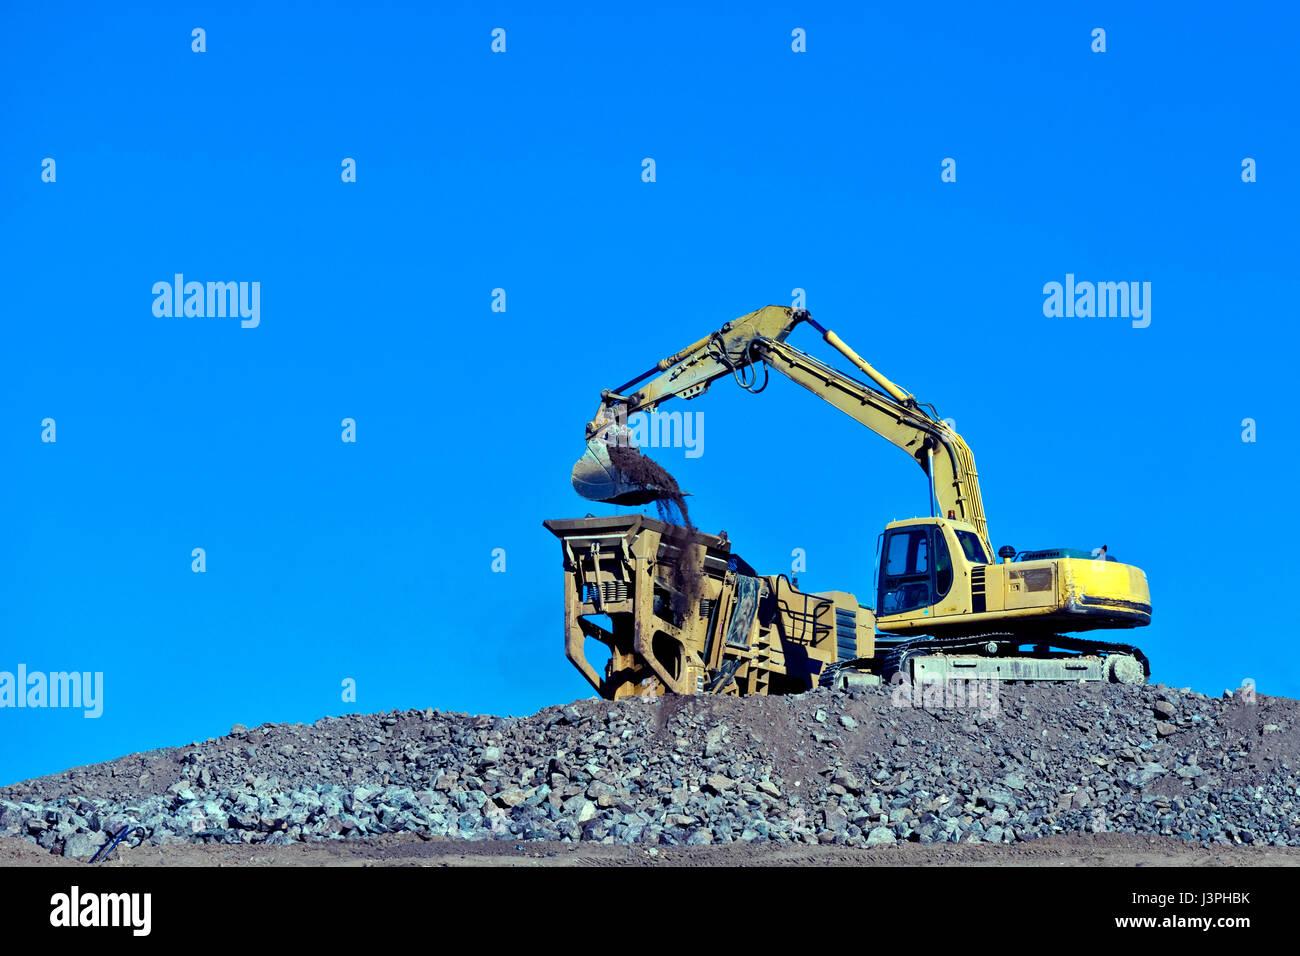 Earth moving equipment loading soil into waiting container - Stock Image